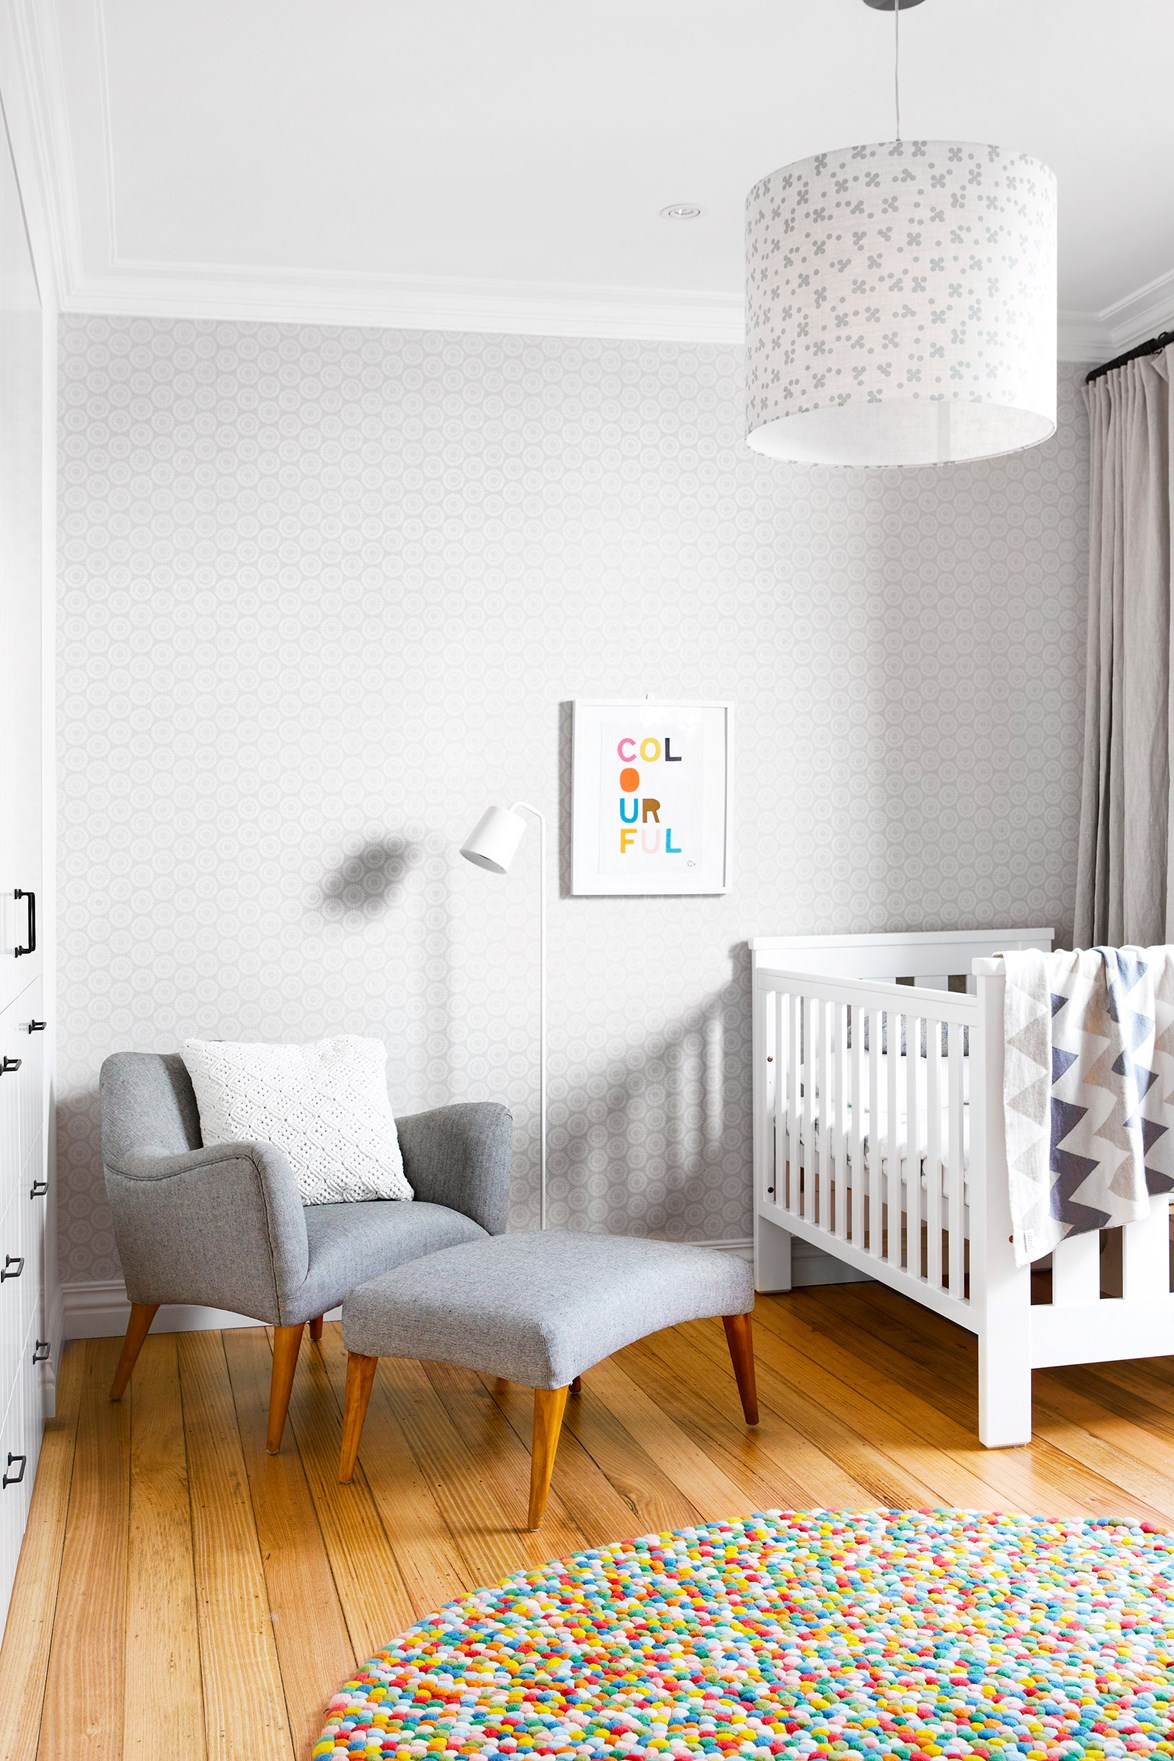 This timeless nursery keeps the decor simple and fuss-free with all the necessities. A pop of colour in the form of a rug and a framed print adds a playful touch. *Photo: Armelle Habib*